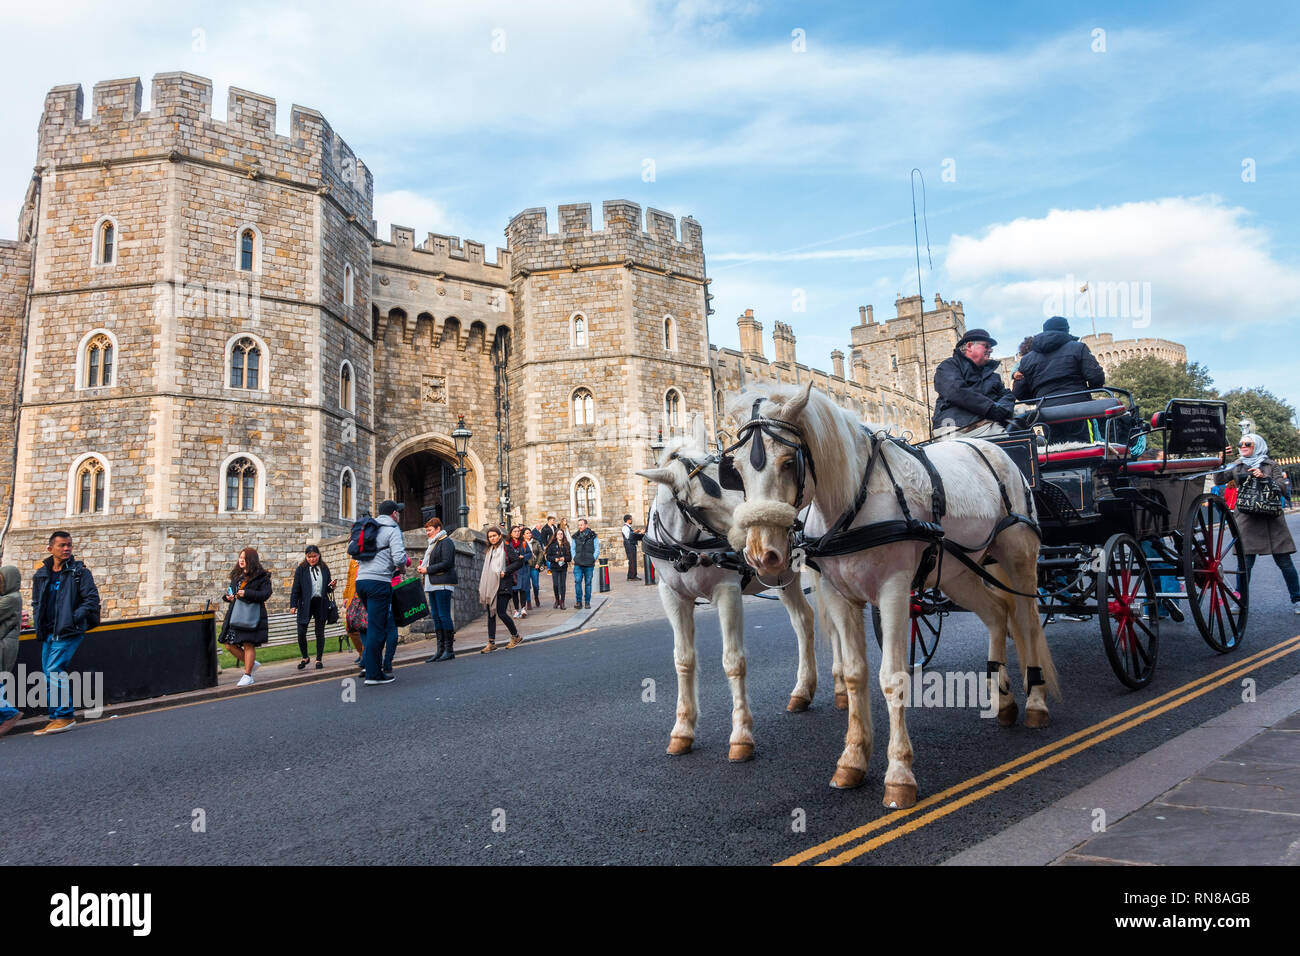 a-horse-drawn-carriage-outside-windsor-castle-pulled-by-two-white-horses-is-popular-with-tourists-and-offers-rides-around-windsor-RN8AGB.jpg